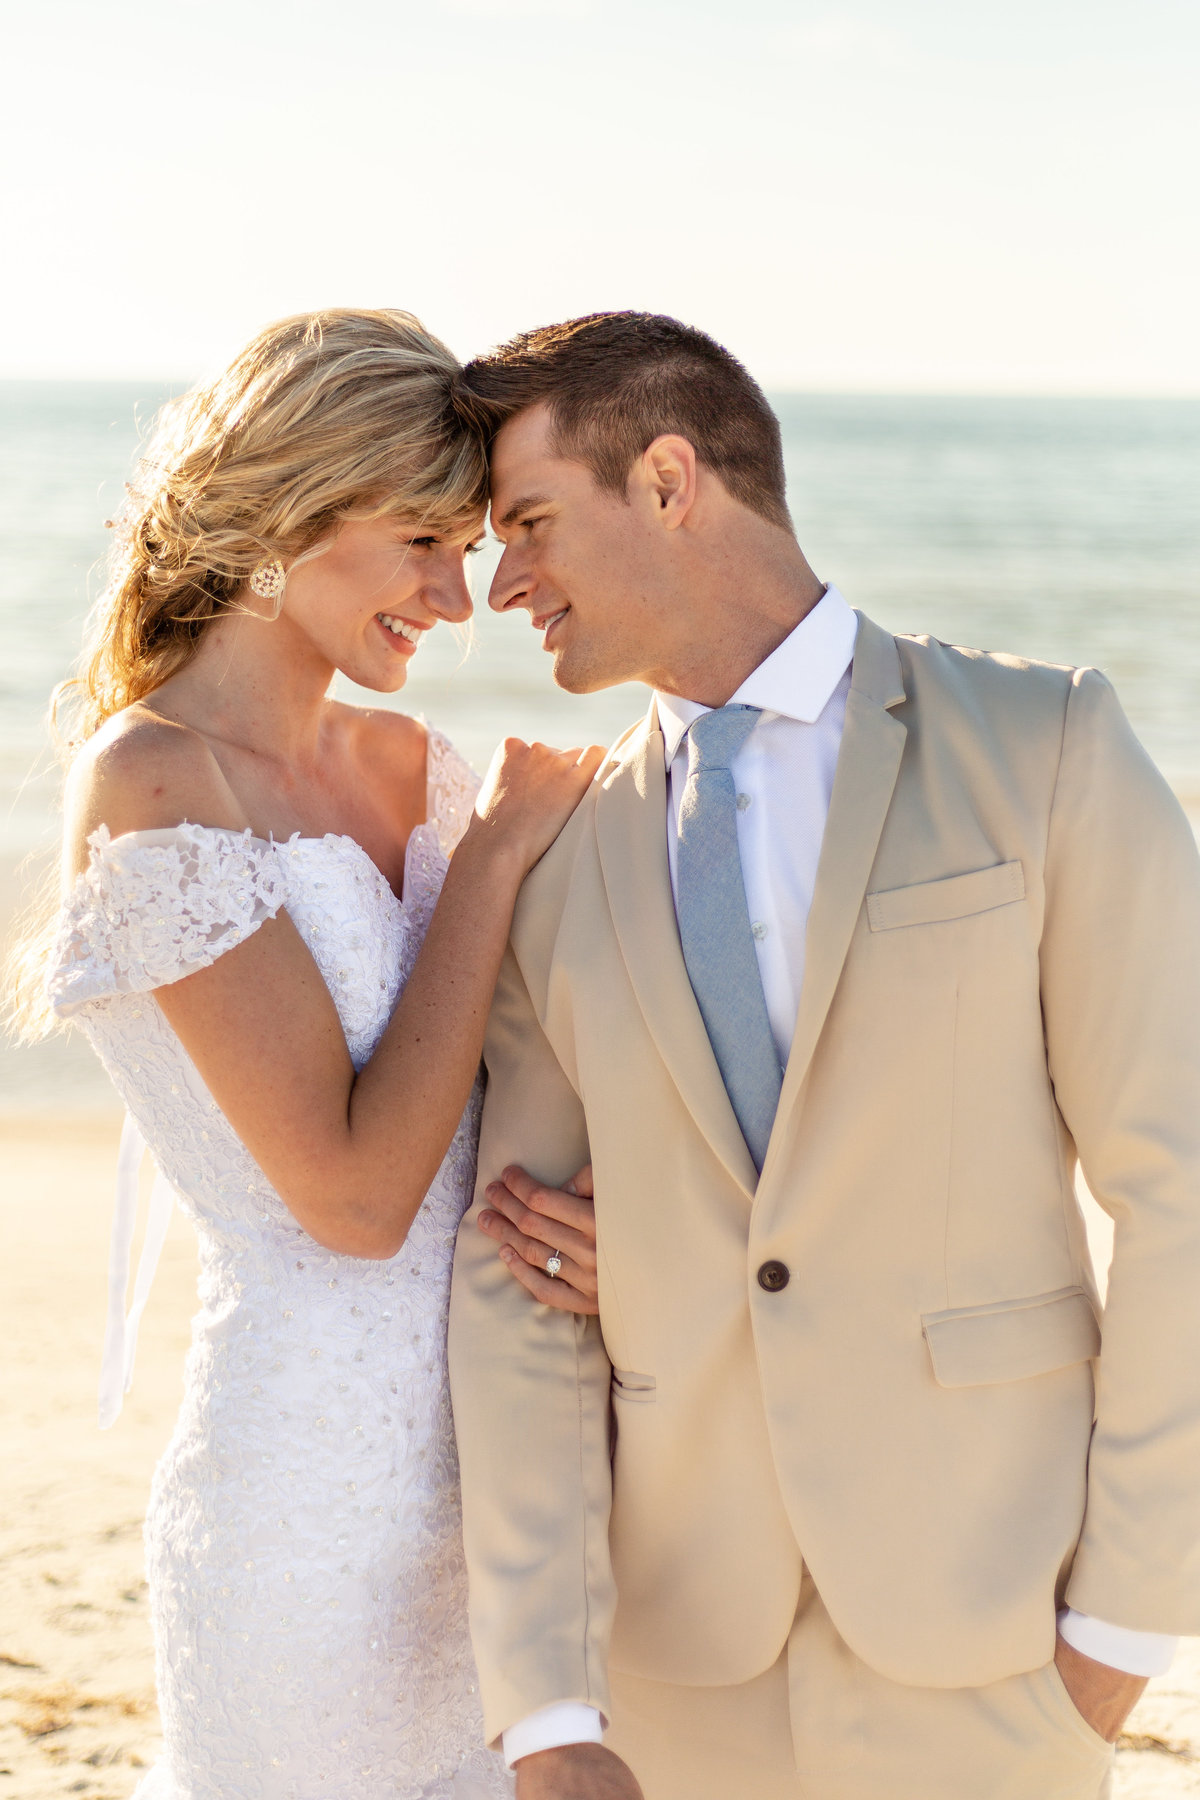 Bride and groom look at each other at their beach wedding in Dunedin, Florida with her in a white wedding dress and him in his tan suit showing off her engagement ring